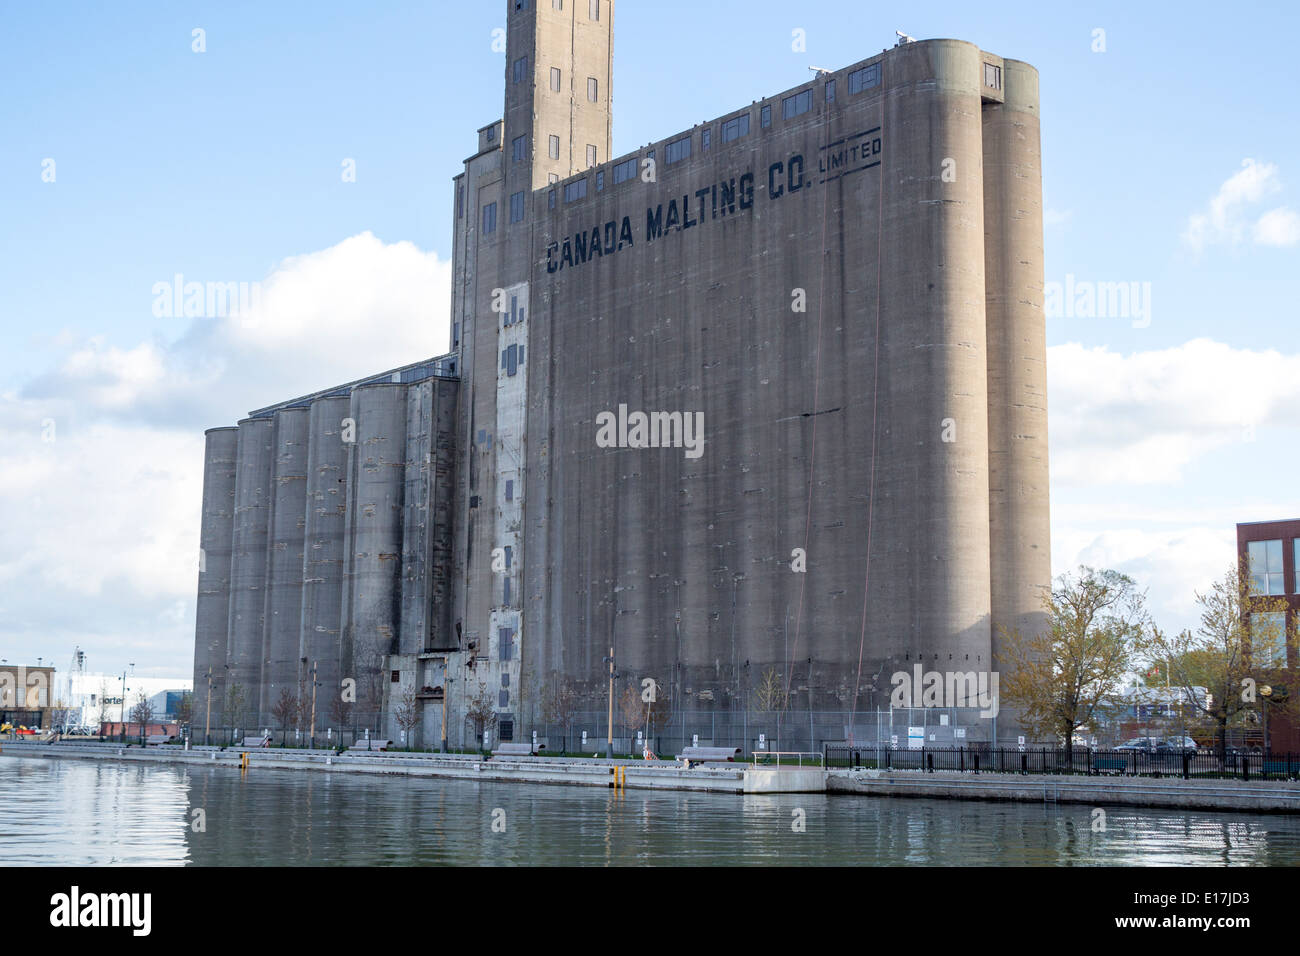 canada-malting-building-grain-silos-on-t